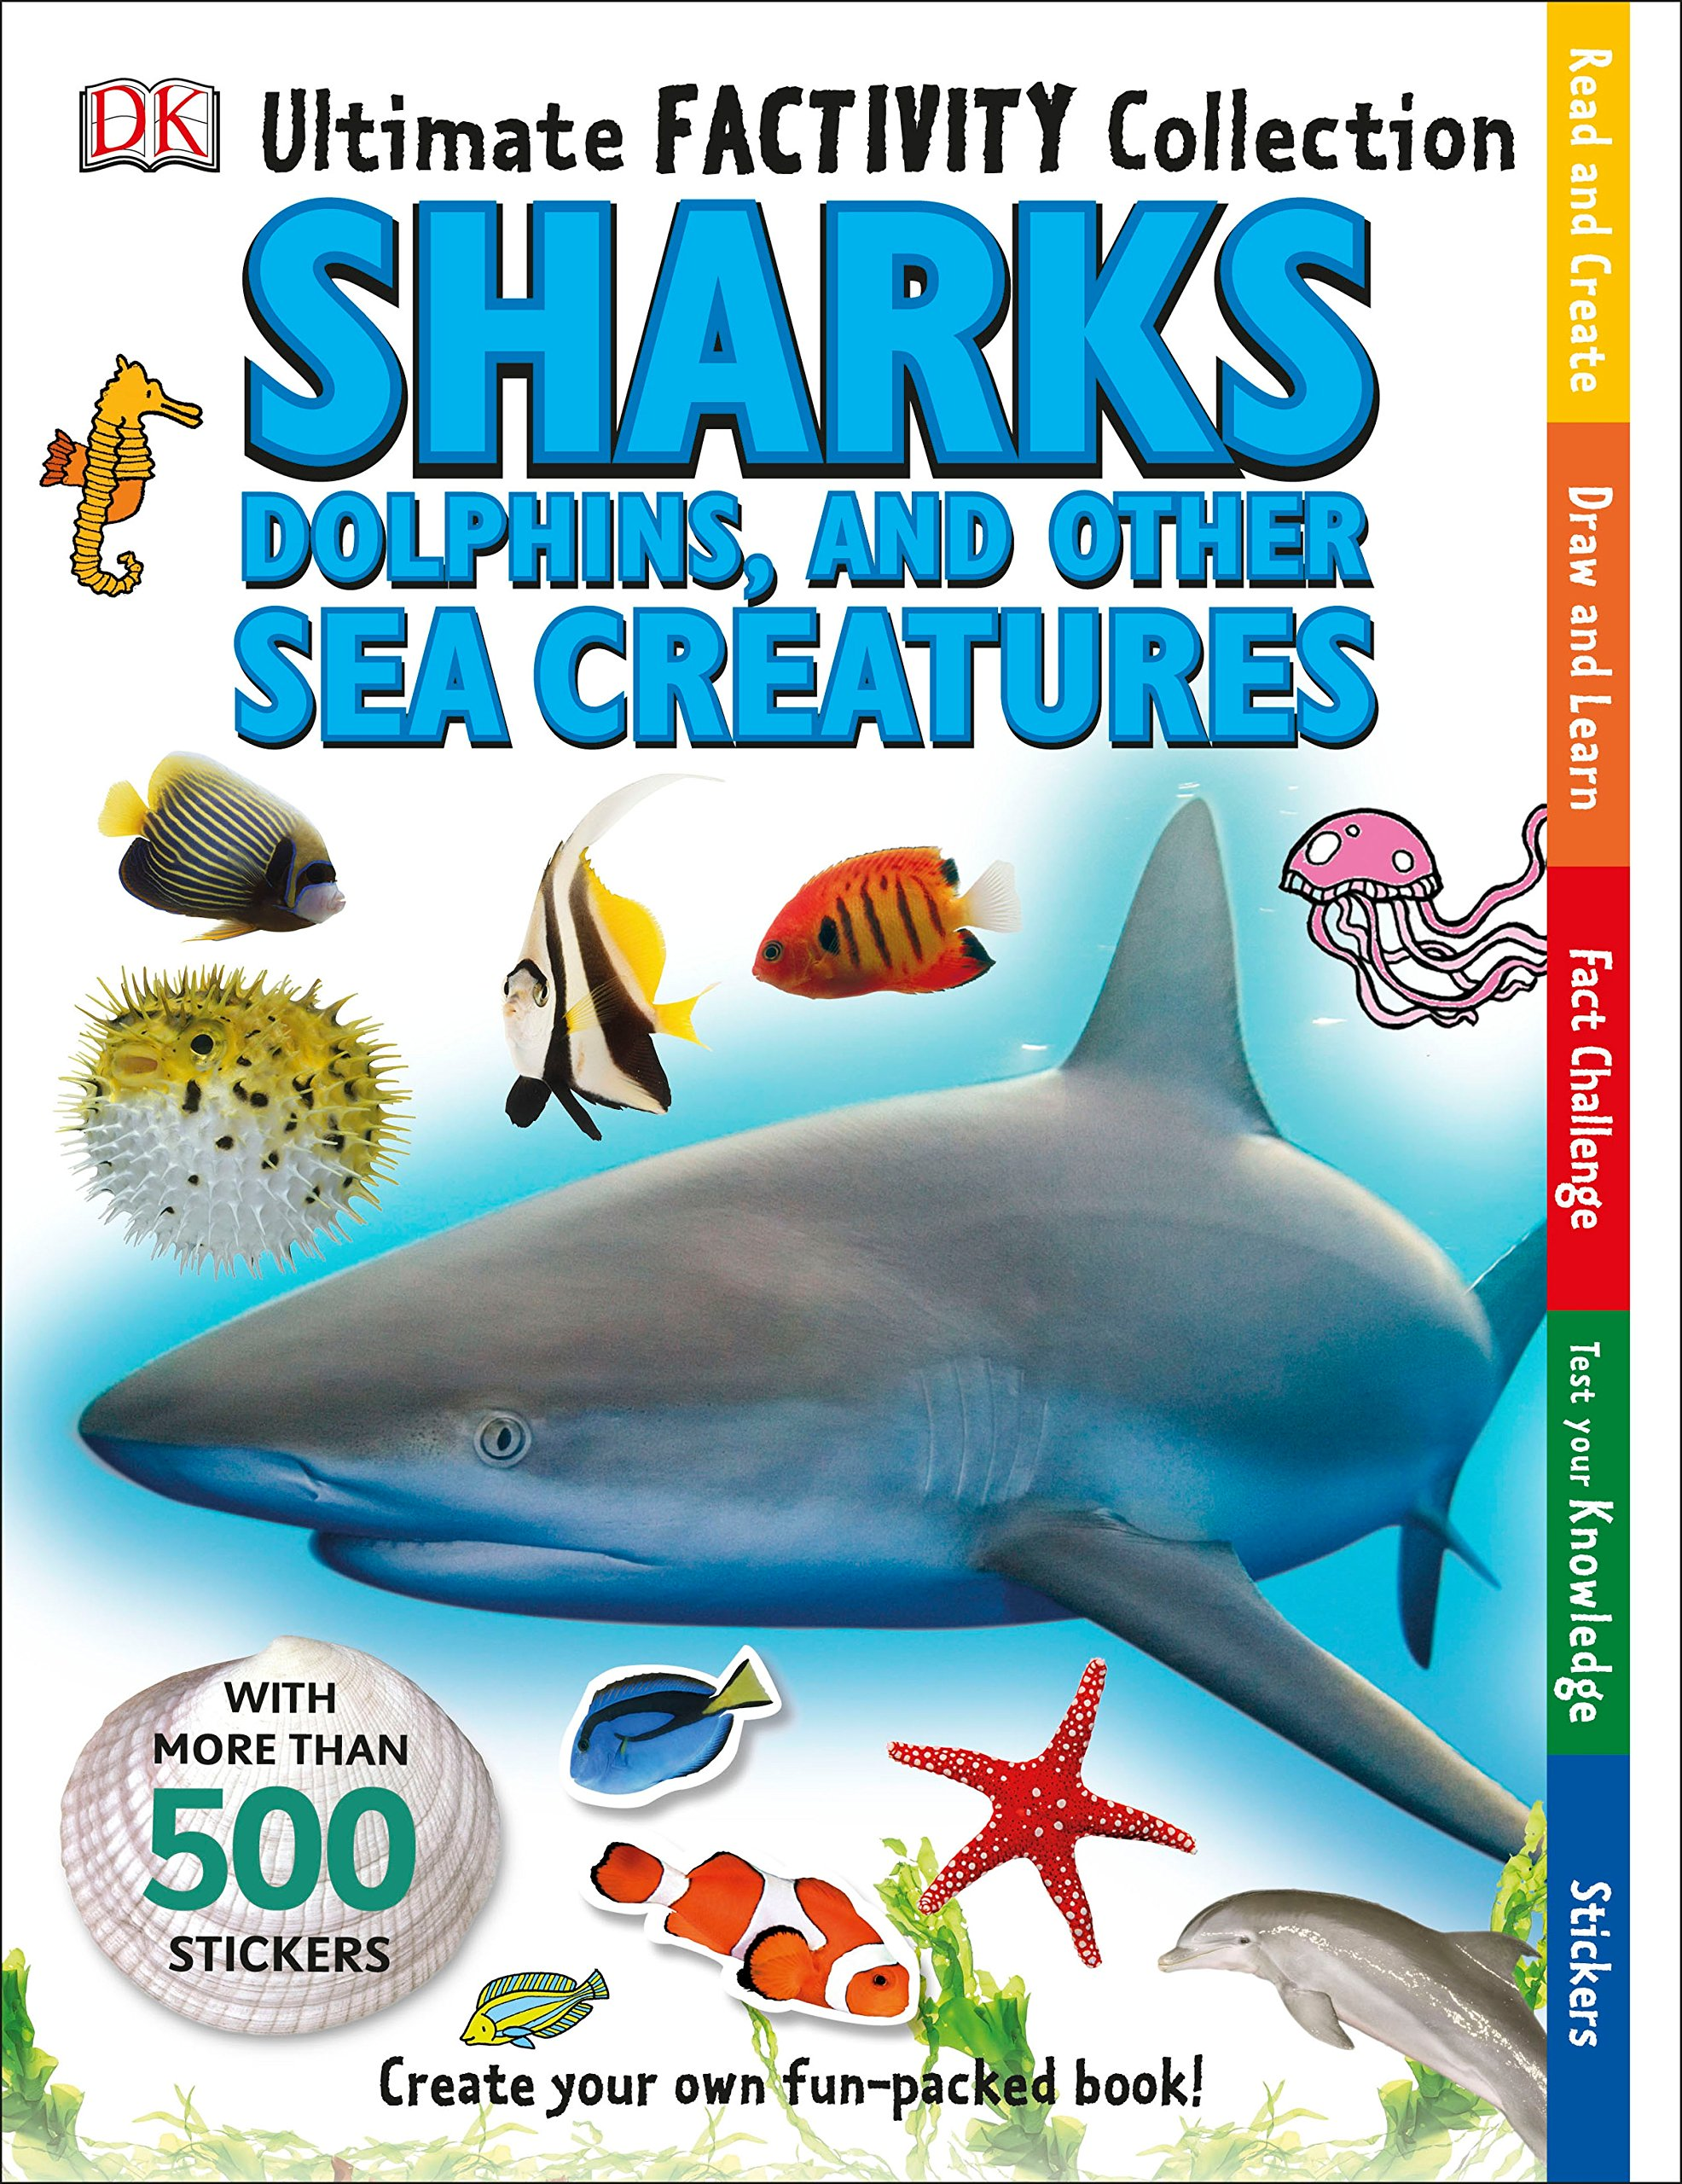 Download Ultimate Factivity Collection: Sharks, Dolphins, and Other Sea Creatures (DK Ultimate Factivity Collection) pdf